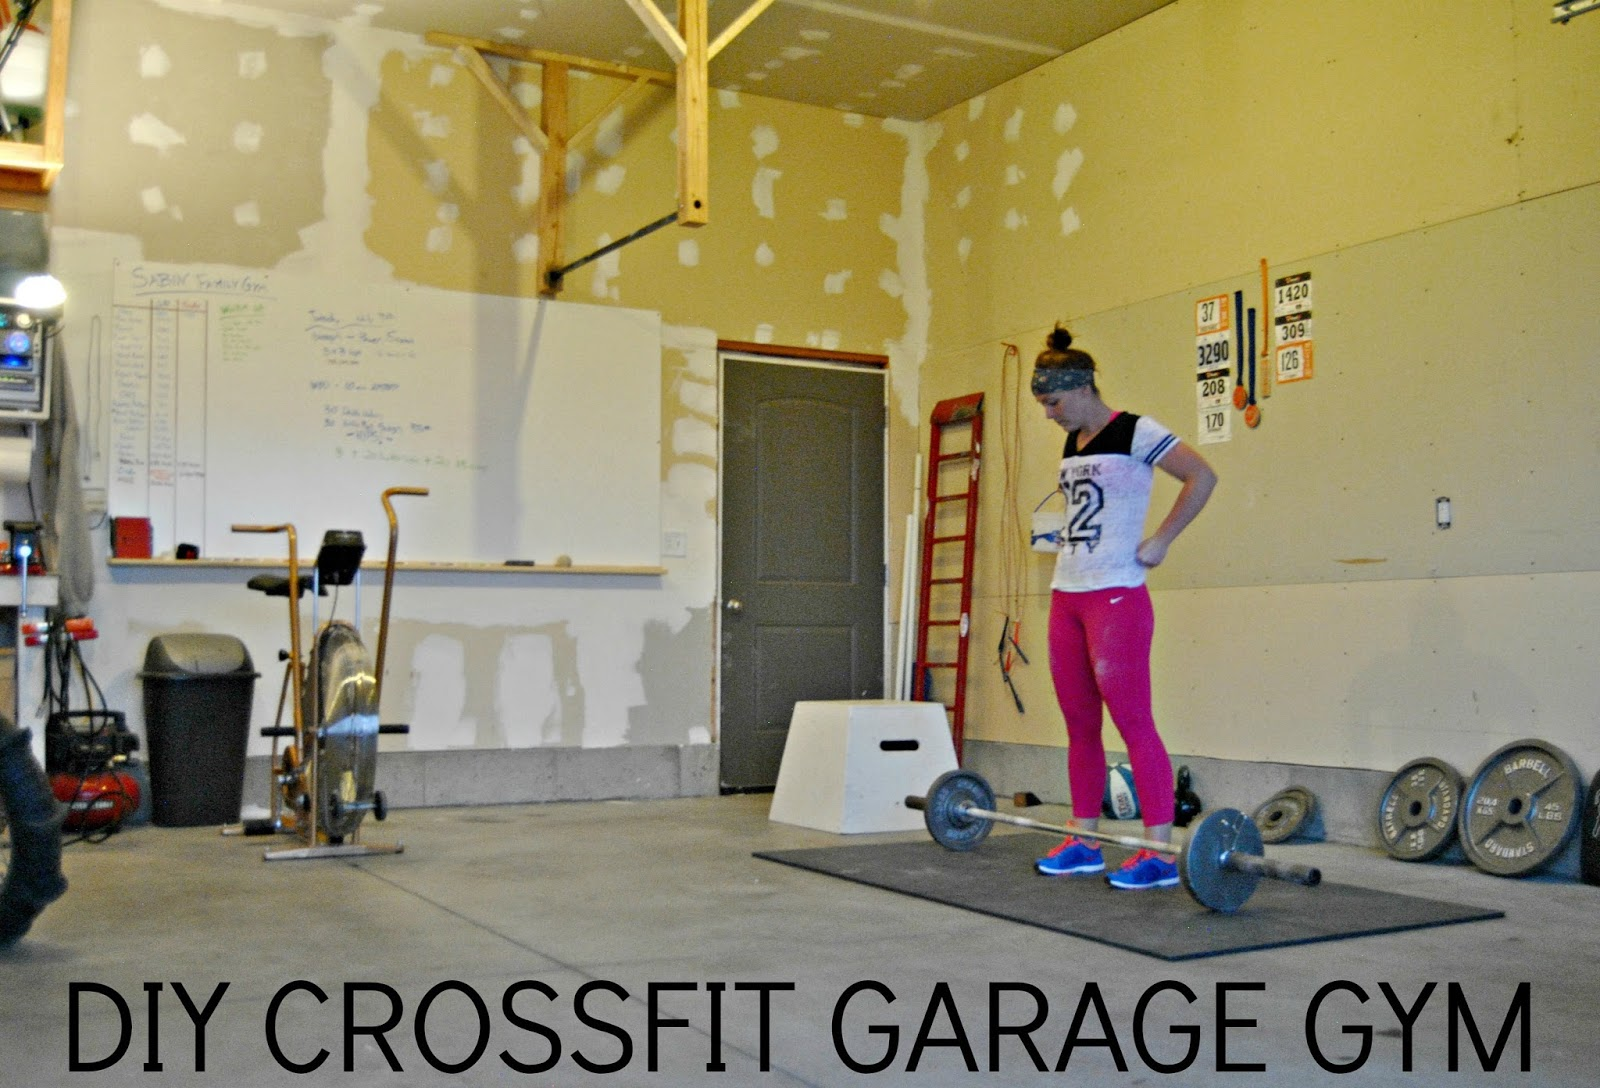 Crossfit garage gym equipment packages dandk organizer